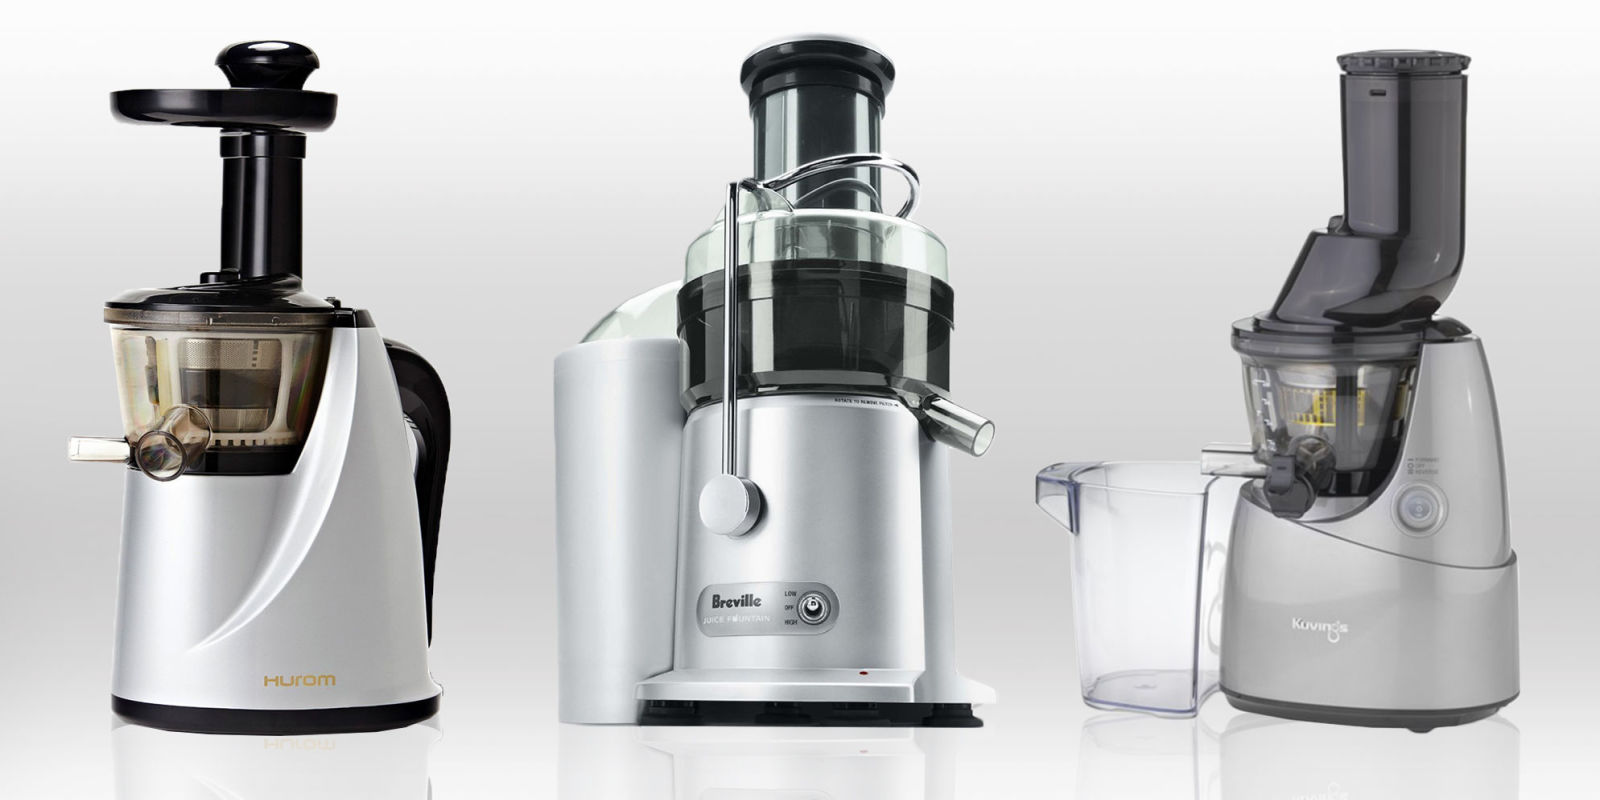 Best Masticating Juicer Machine : 8 Best Cold Press Juicers in 2017 - Slow and Masticating ...